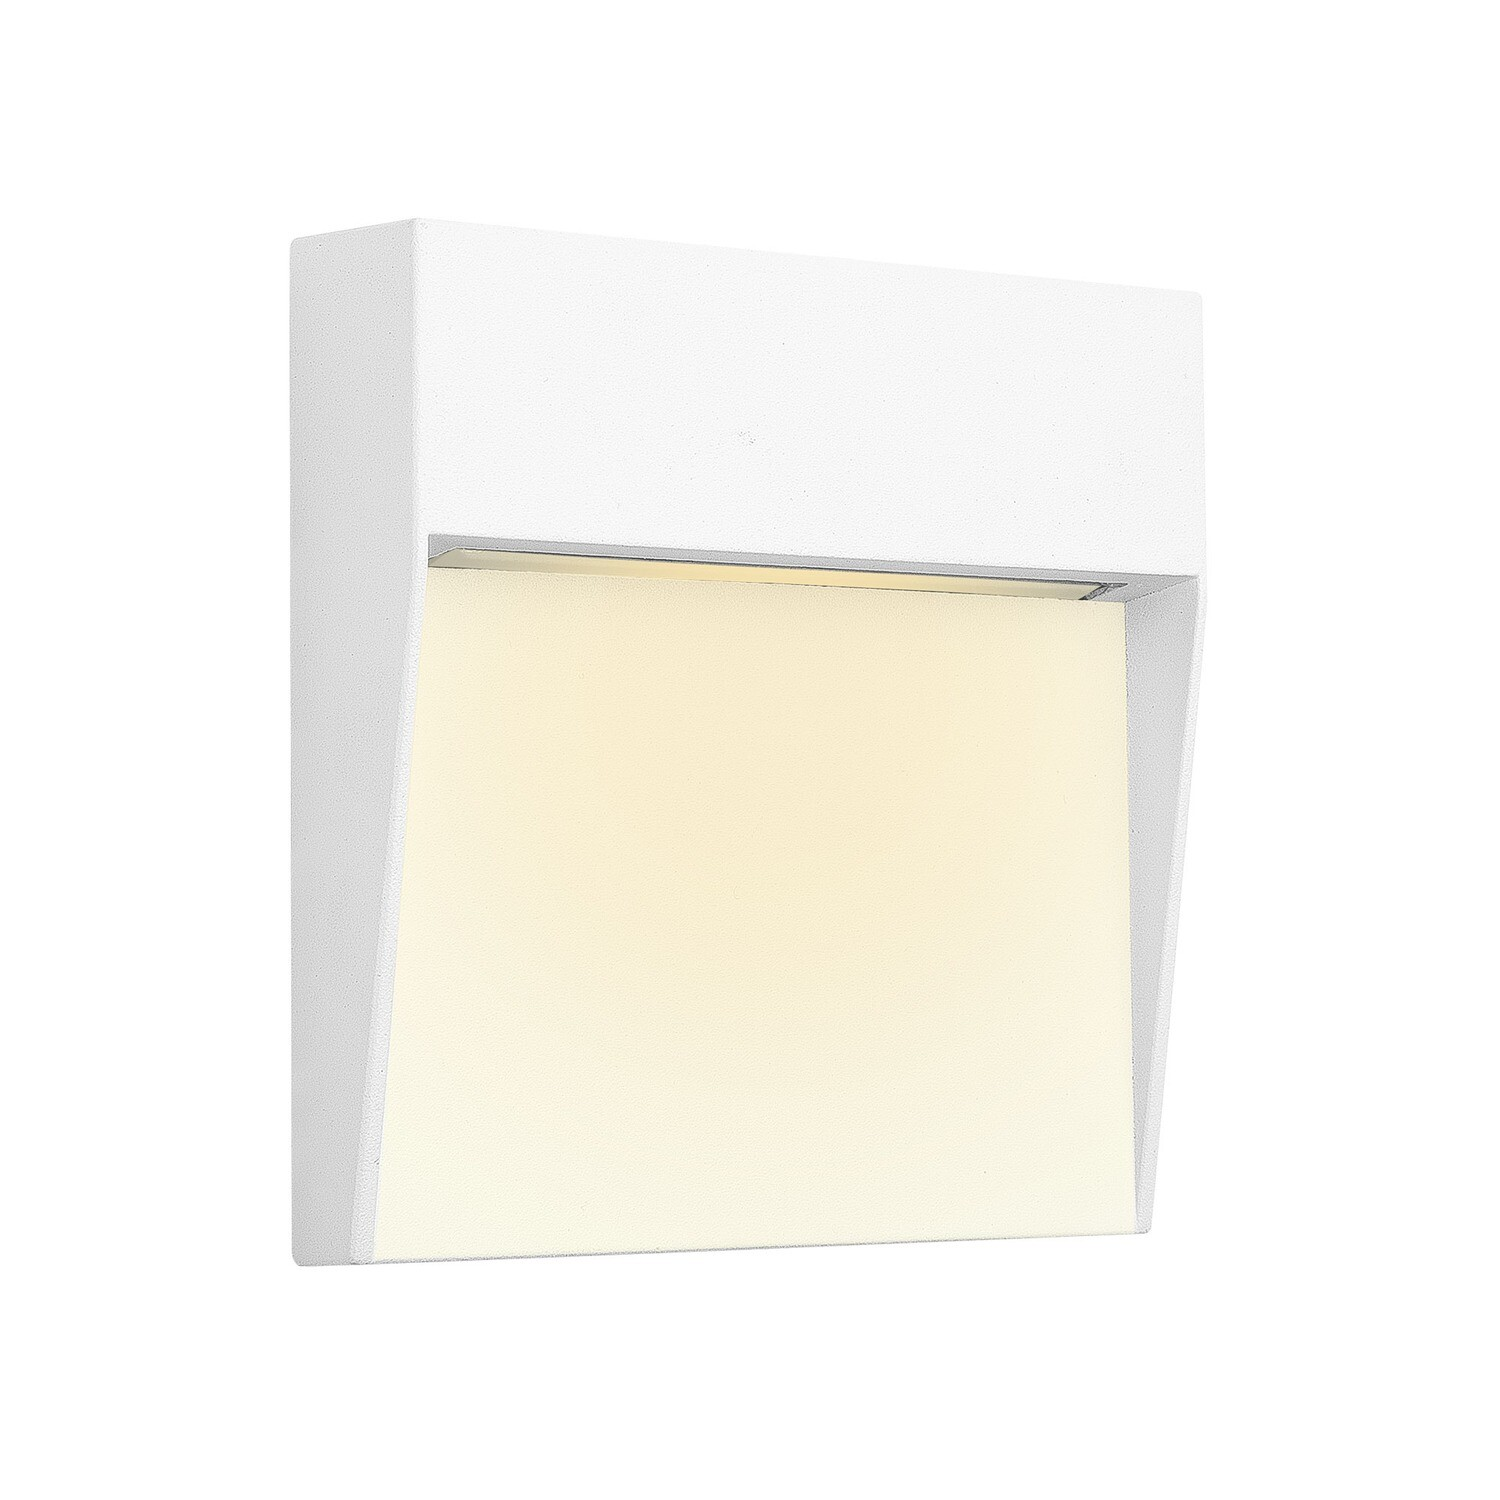 Baker Wall Lamp Small Square, 3W LED, 3000K, 150lm, IP54, White